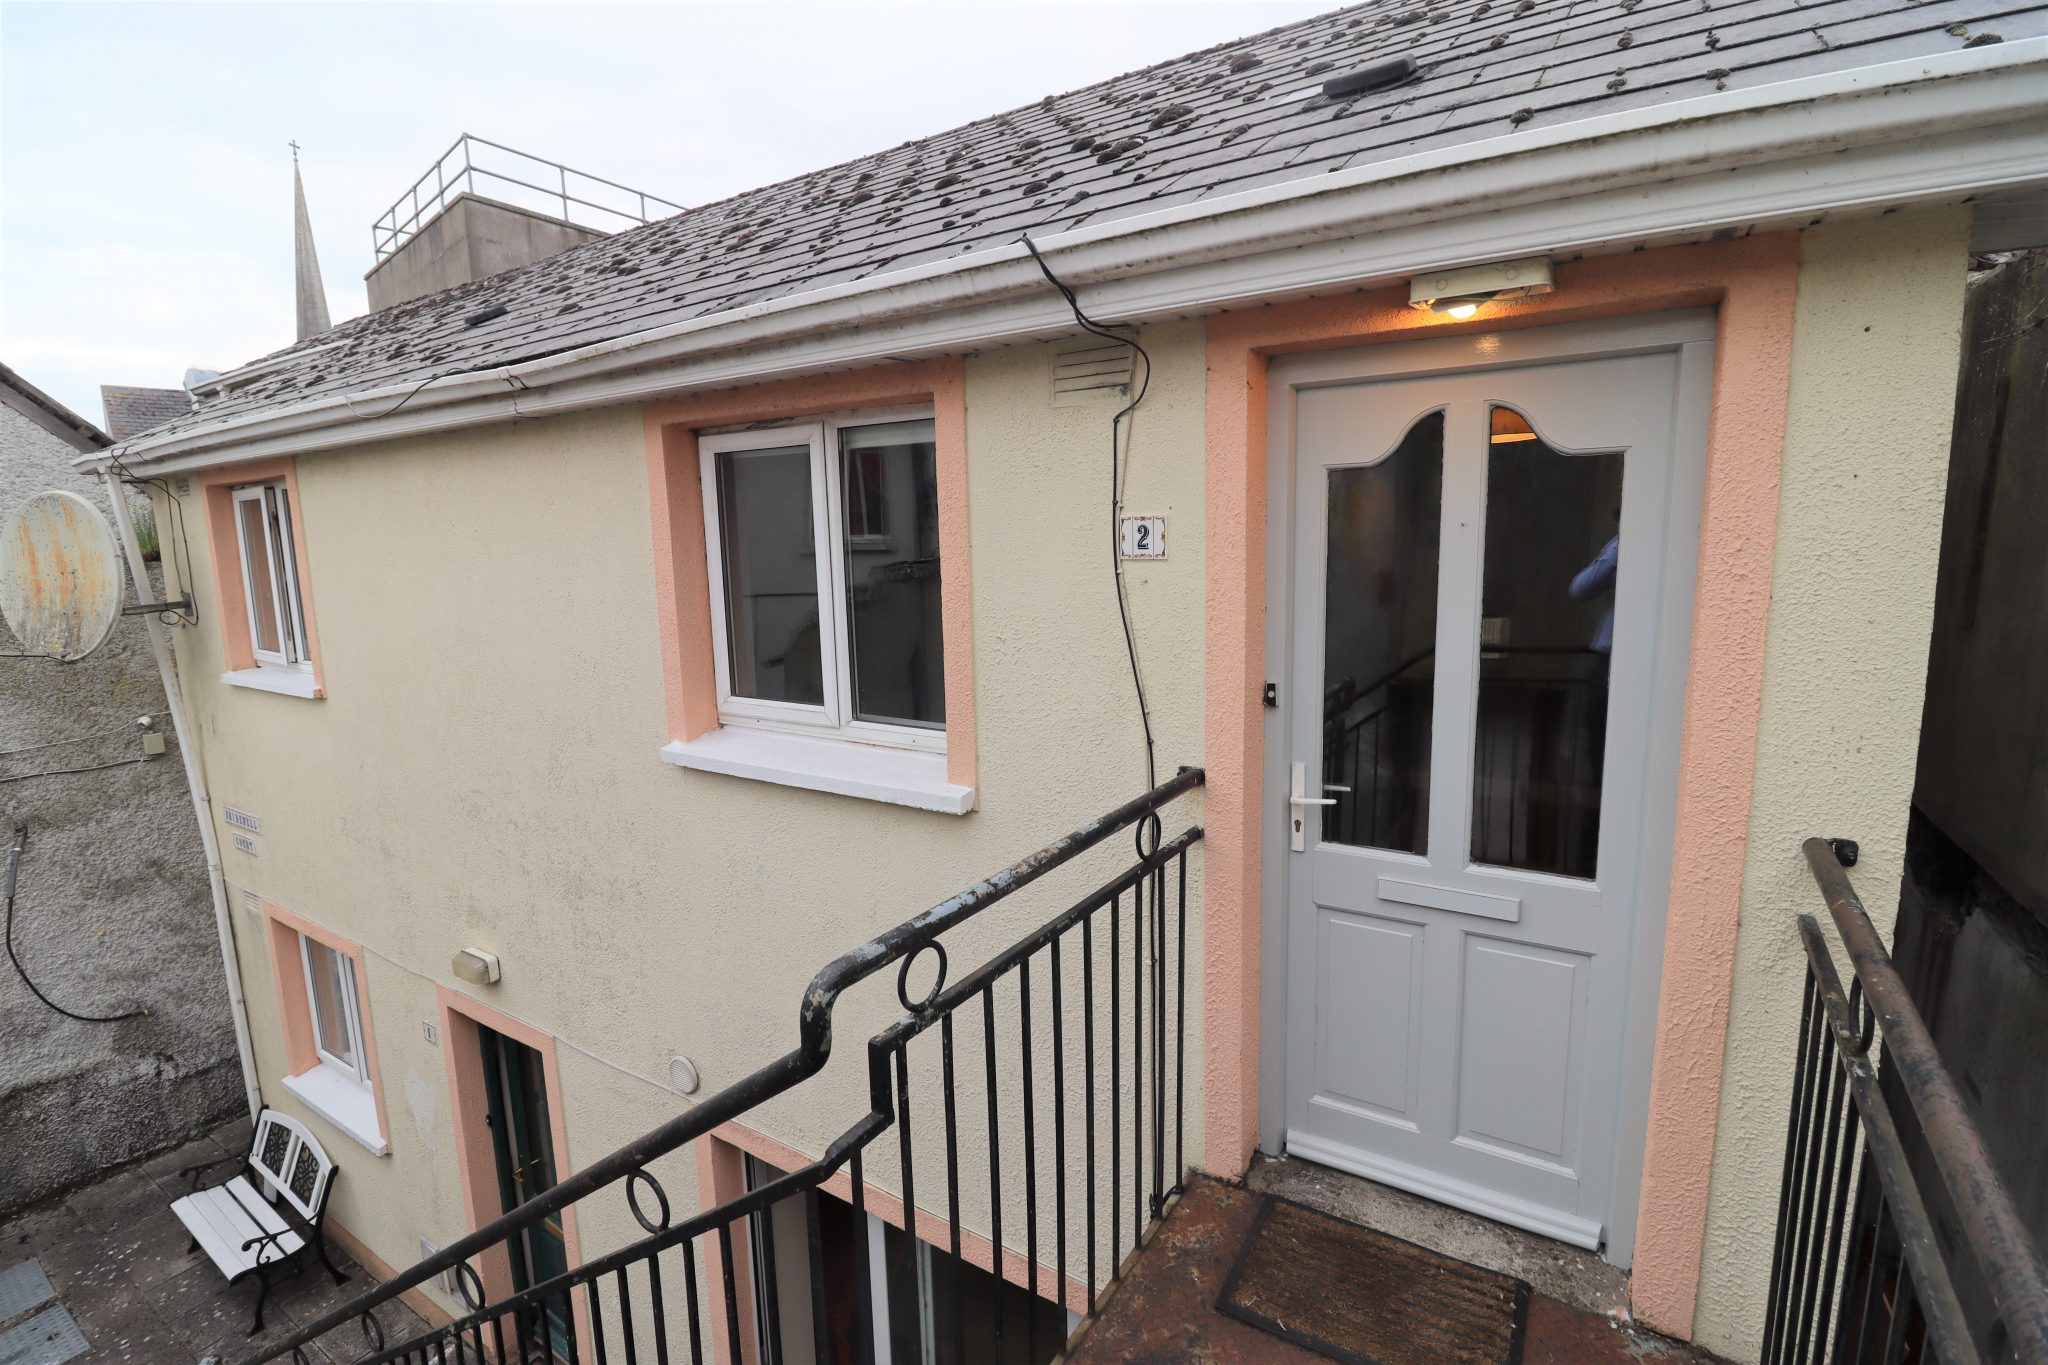 Apartment 2, Bridewell Court, Carlow Town, Co. Carlow